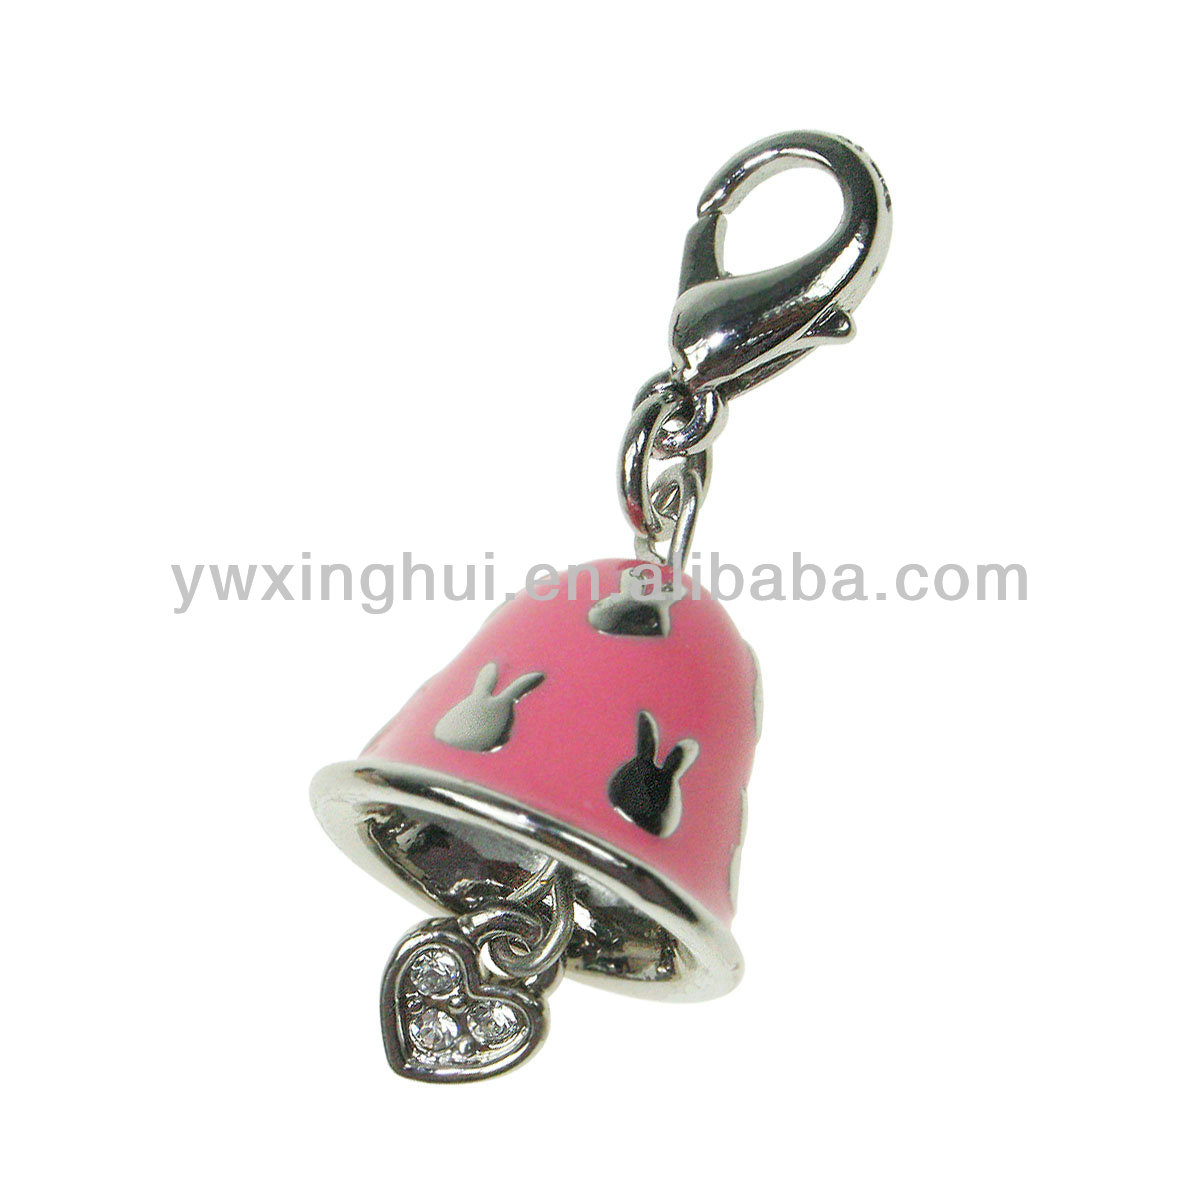 Wholesale enamel bell kids charm, charm for bracelet